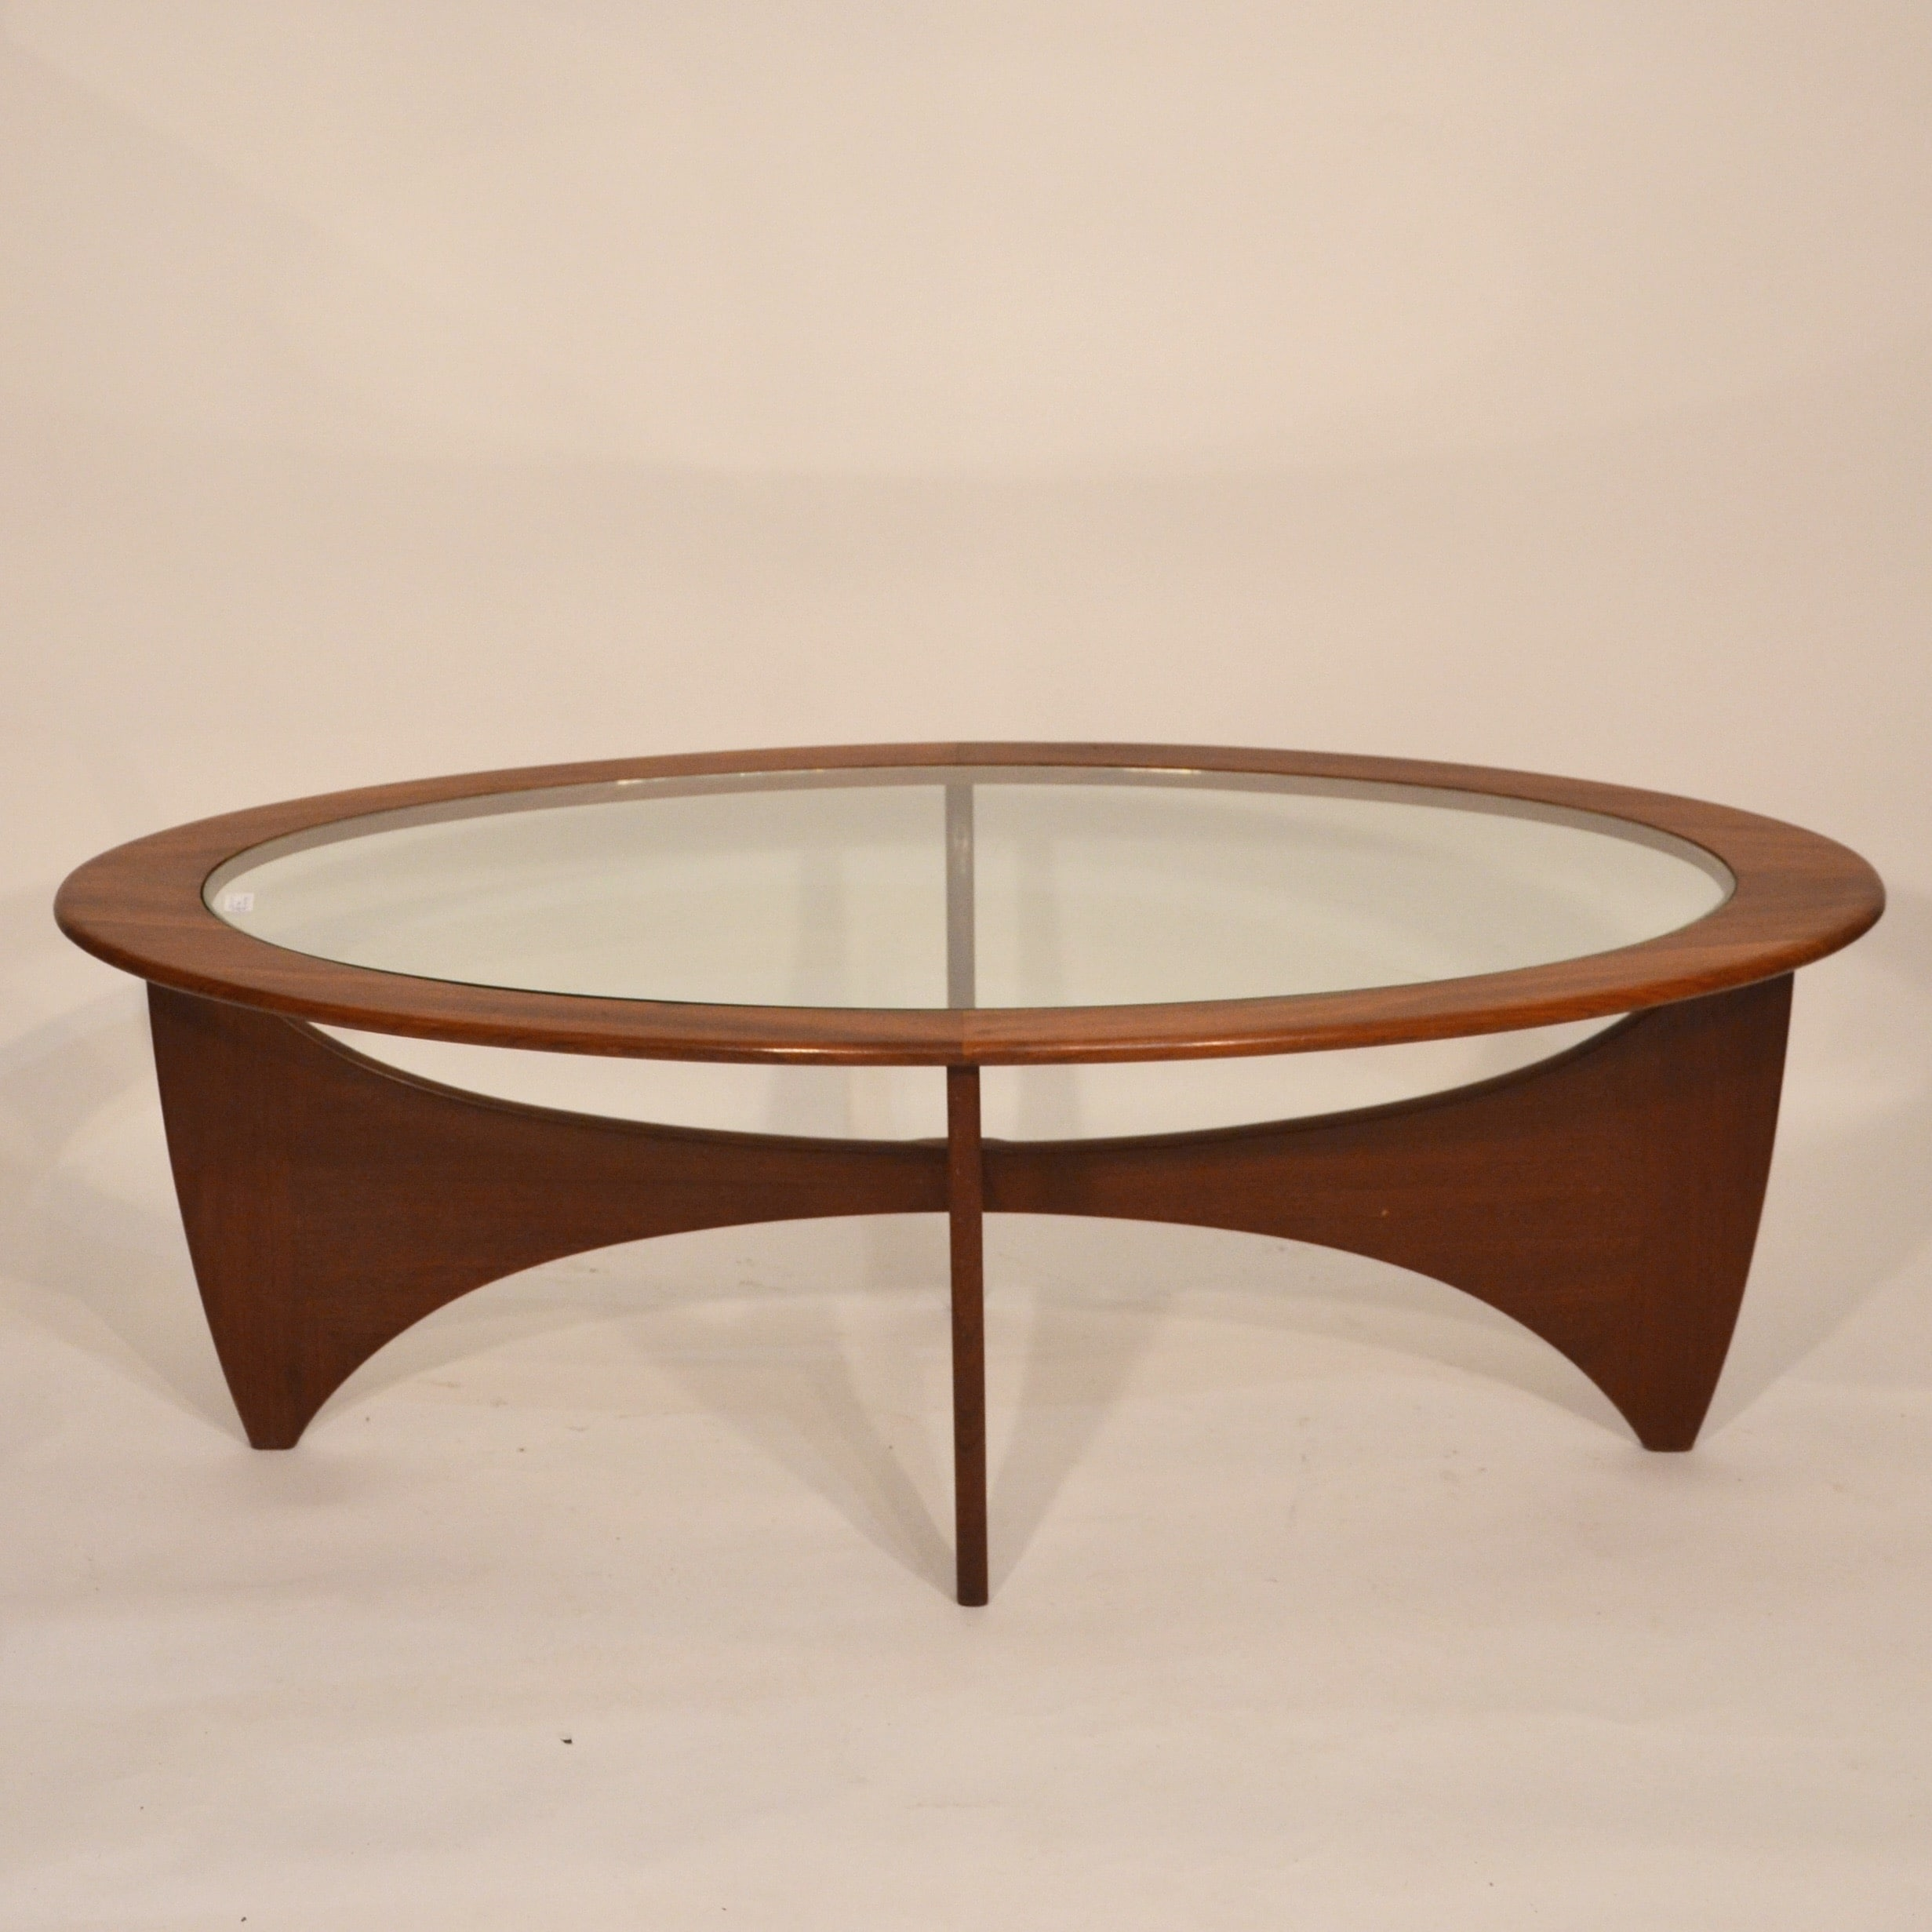 Table Basse Ronde Ovale Table Basse Astro Ovale Bindiesbindies